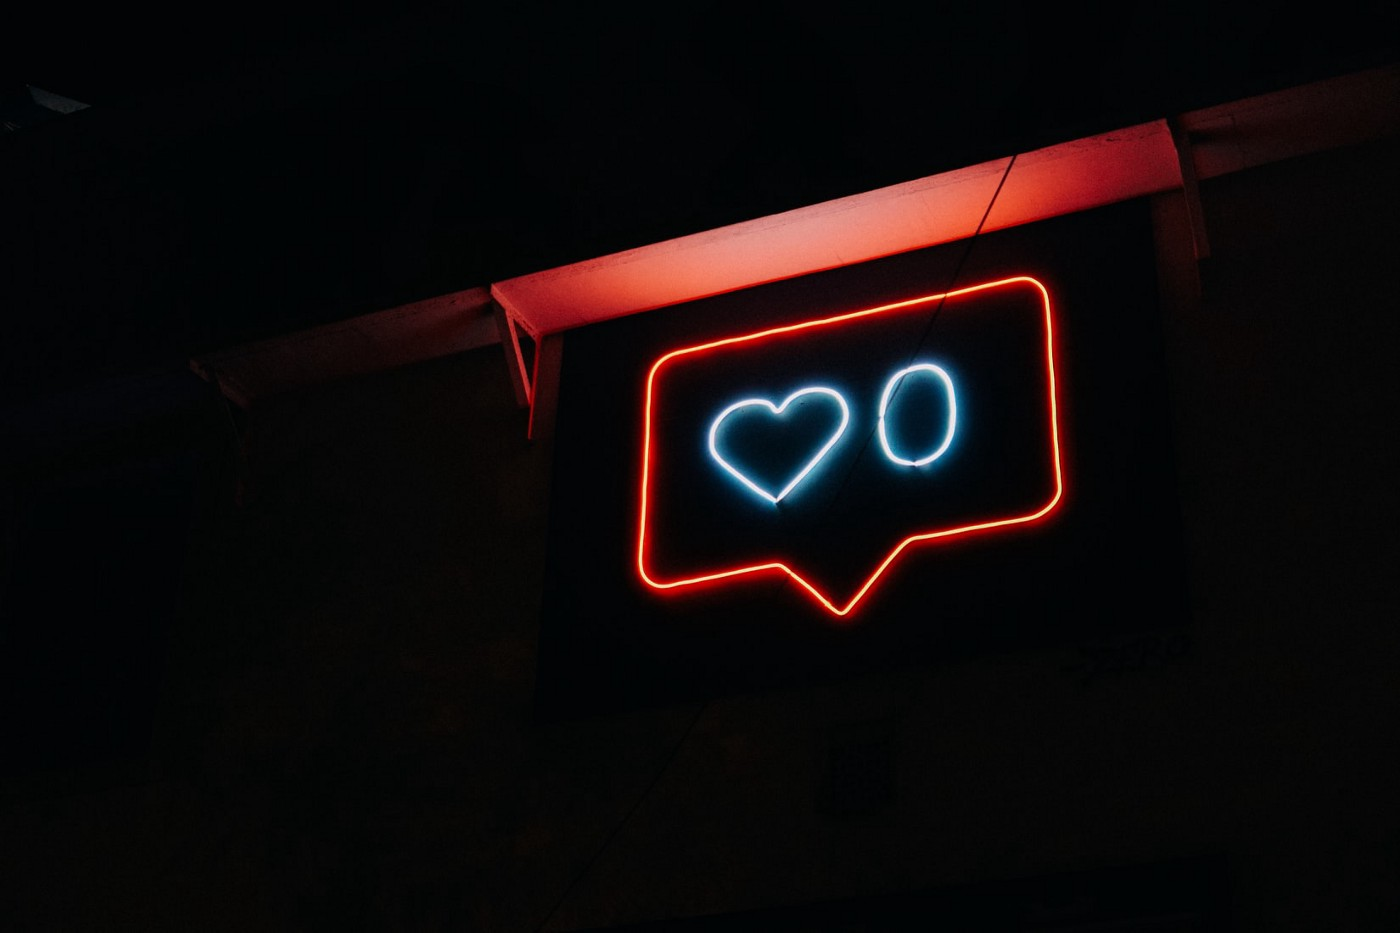 Neon signage of a social media heart icon with a zero next to it.